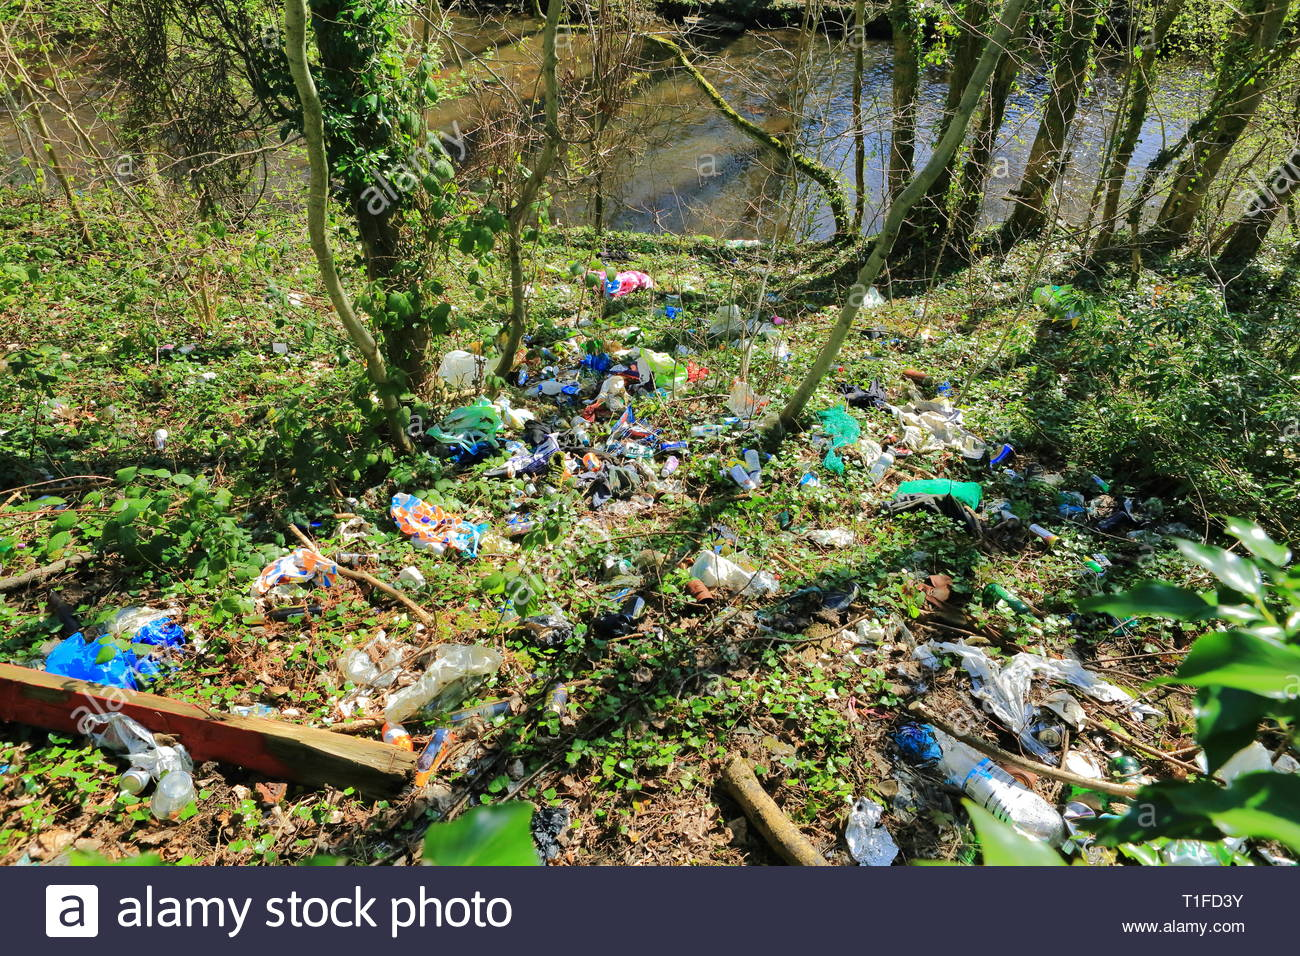 Discarded Rubbish Thrown Down The Embankment To The River Tame At Dukinfield UK - Stock Image